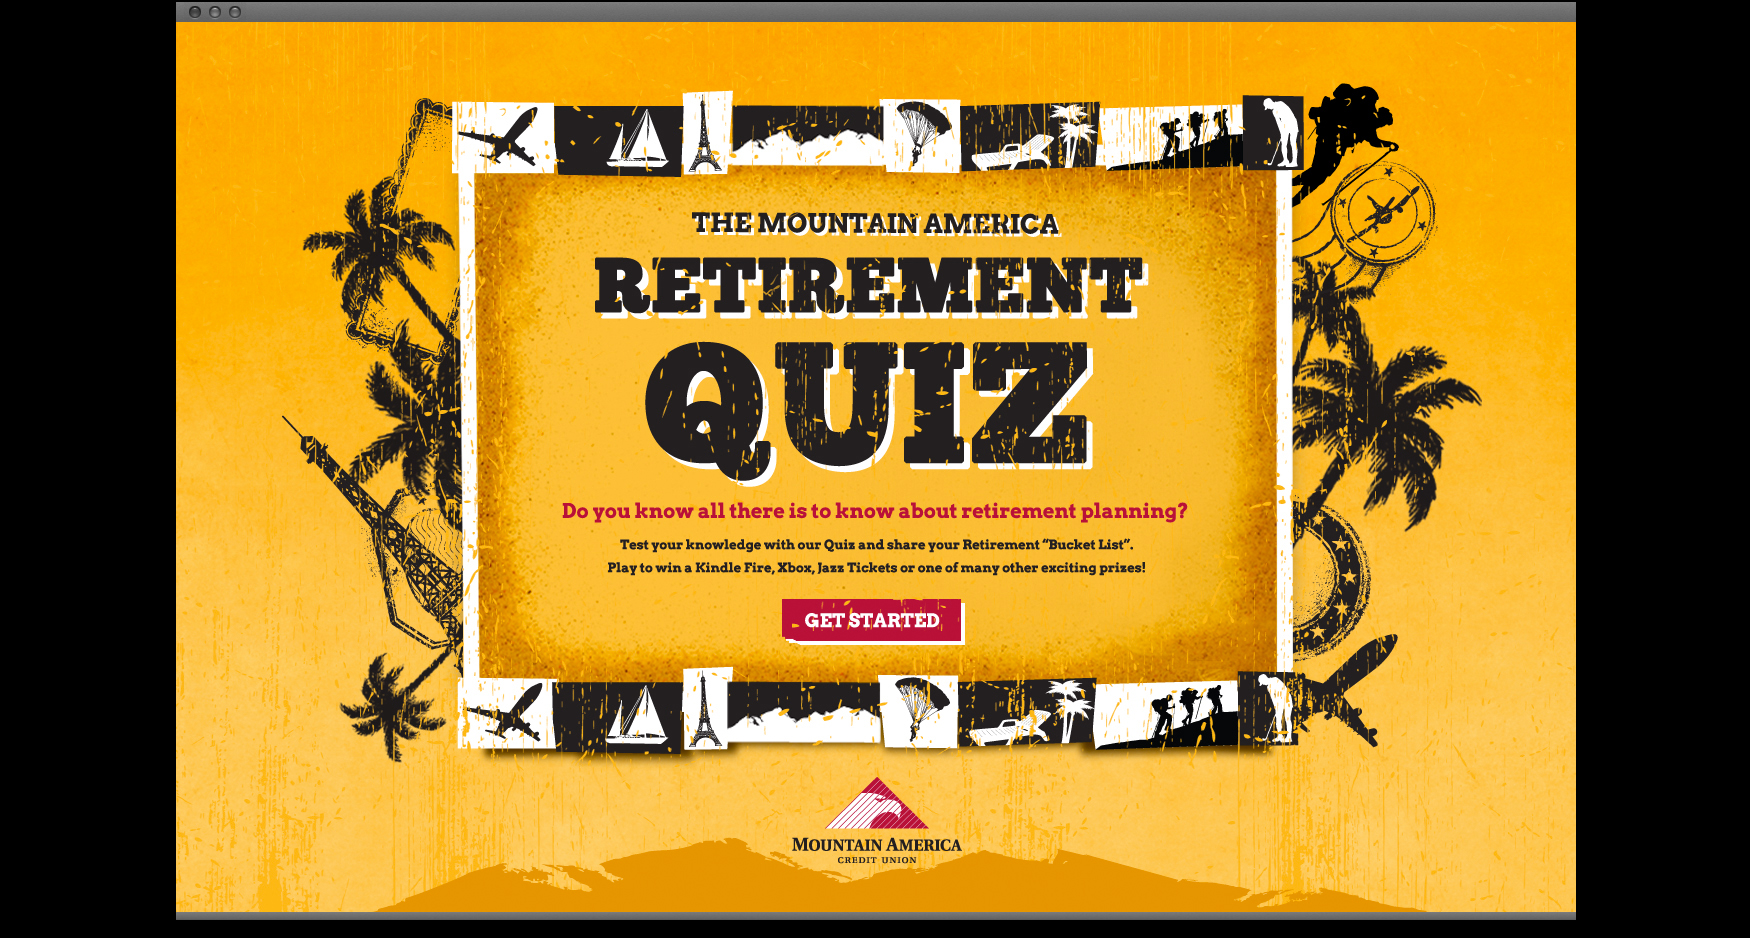 MACU 1 - MOUNTAIN AMERICA CREDIT UNION - RETIREMENT 101 QUIZ SITE